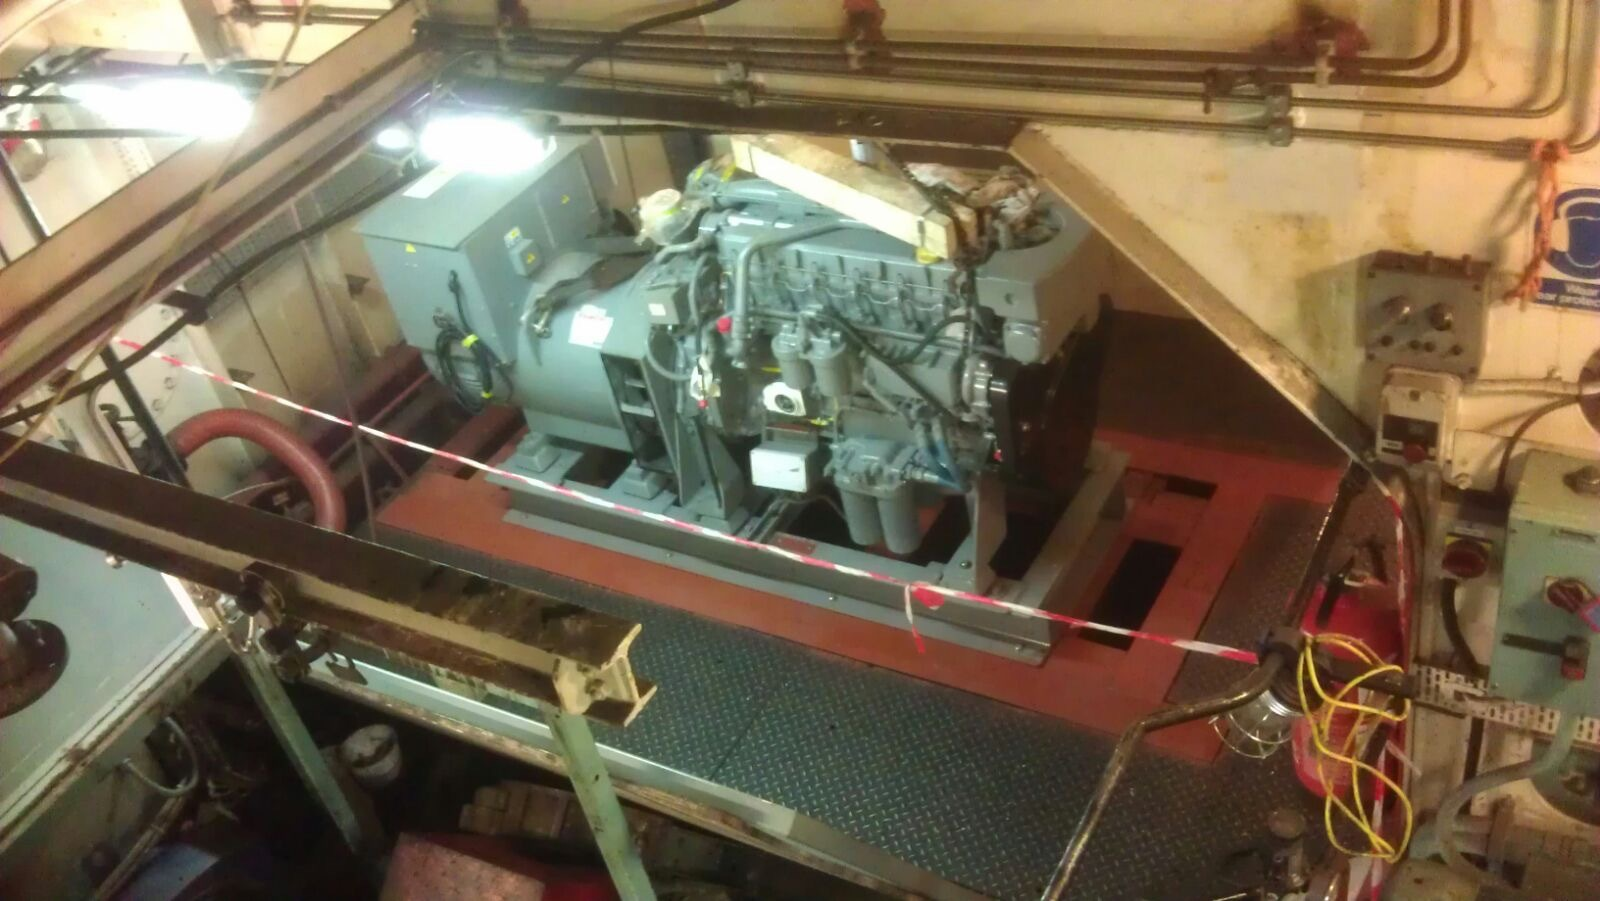 After - New Marine Genset installed